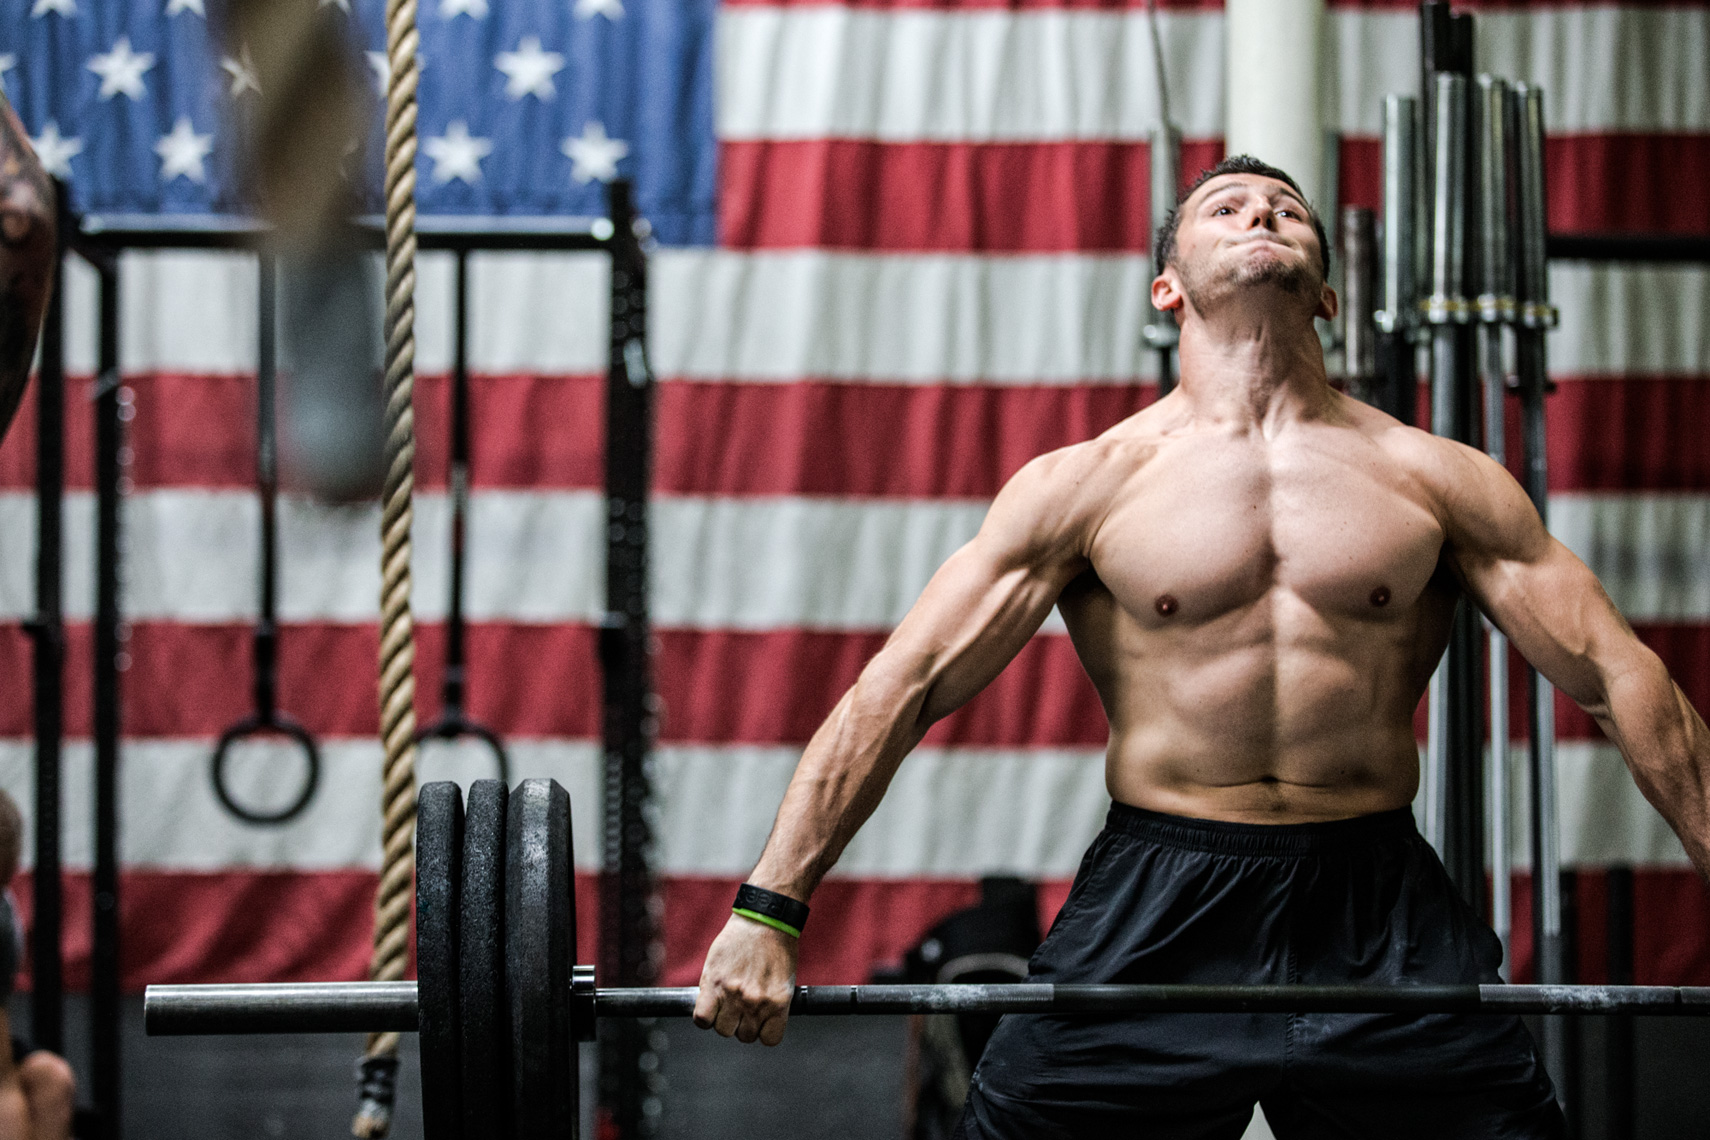 Los Angeles Sports Photography, Michael Brian, Austin Malleolo, Crossfit Games athlete, snatching in front of giant American flag, Crossfit One Nation, Reebok, Rogue